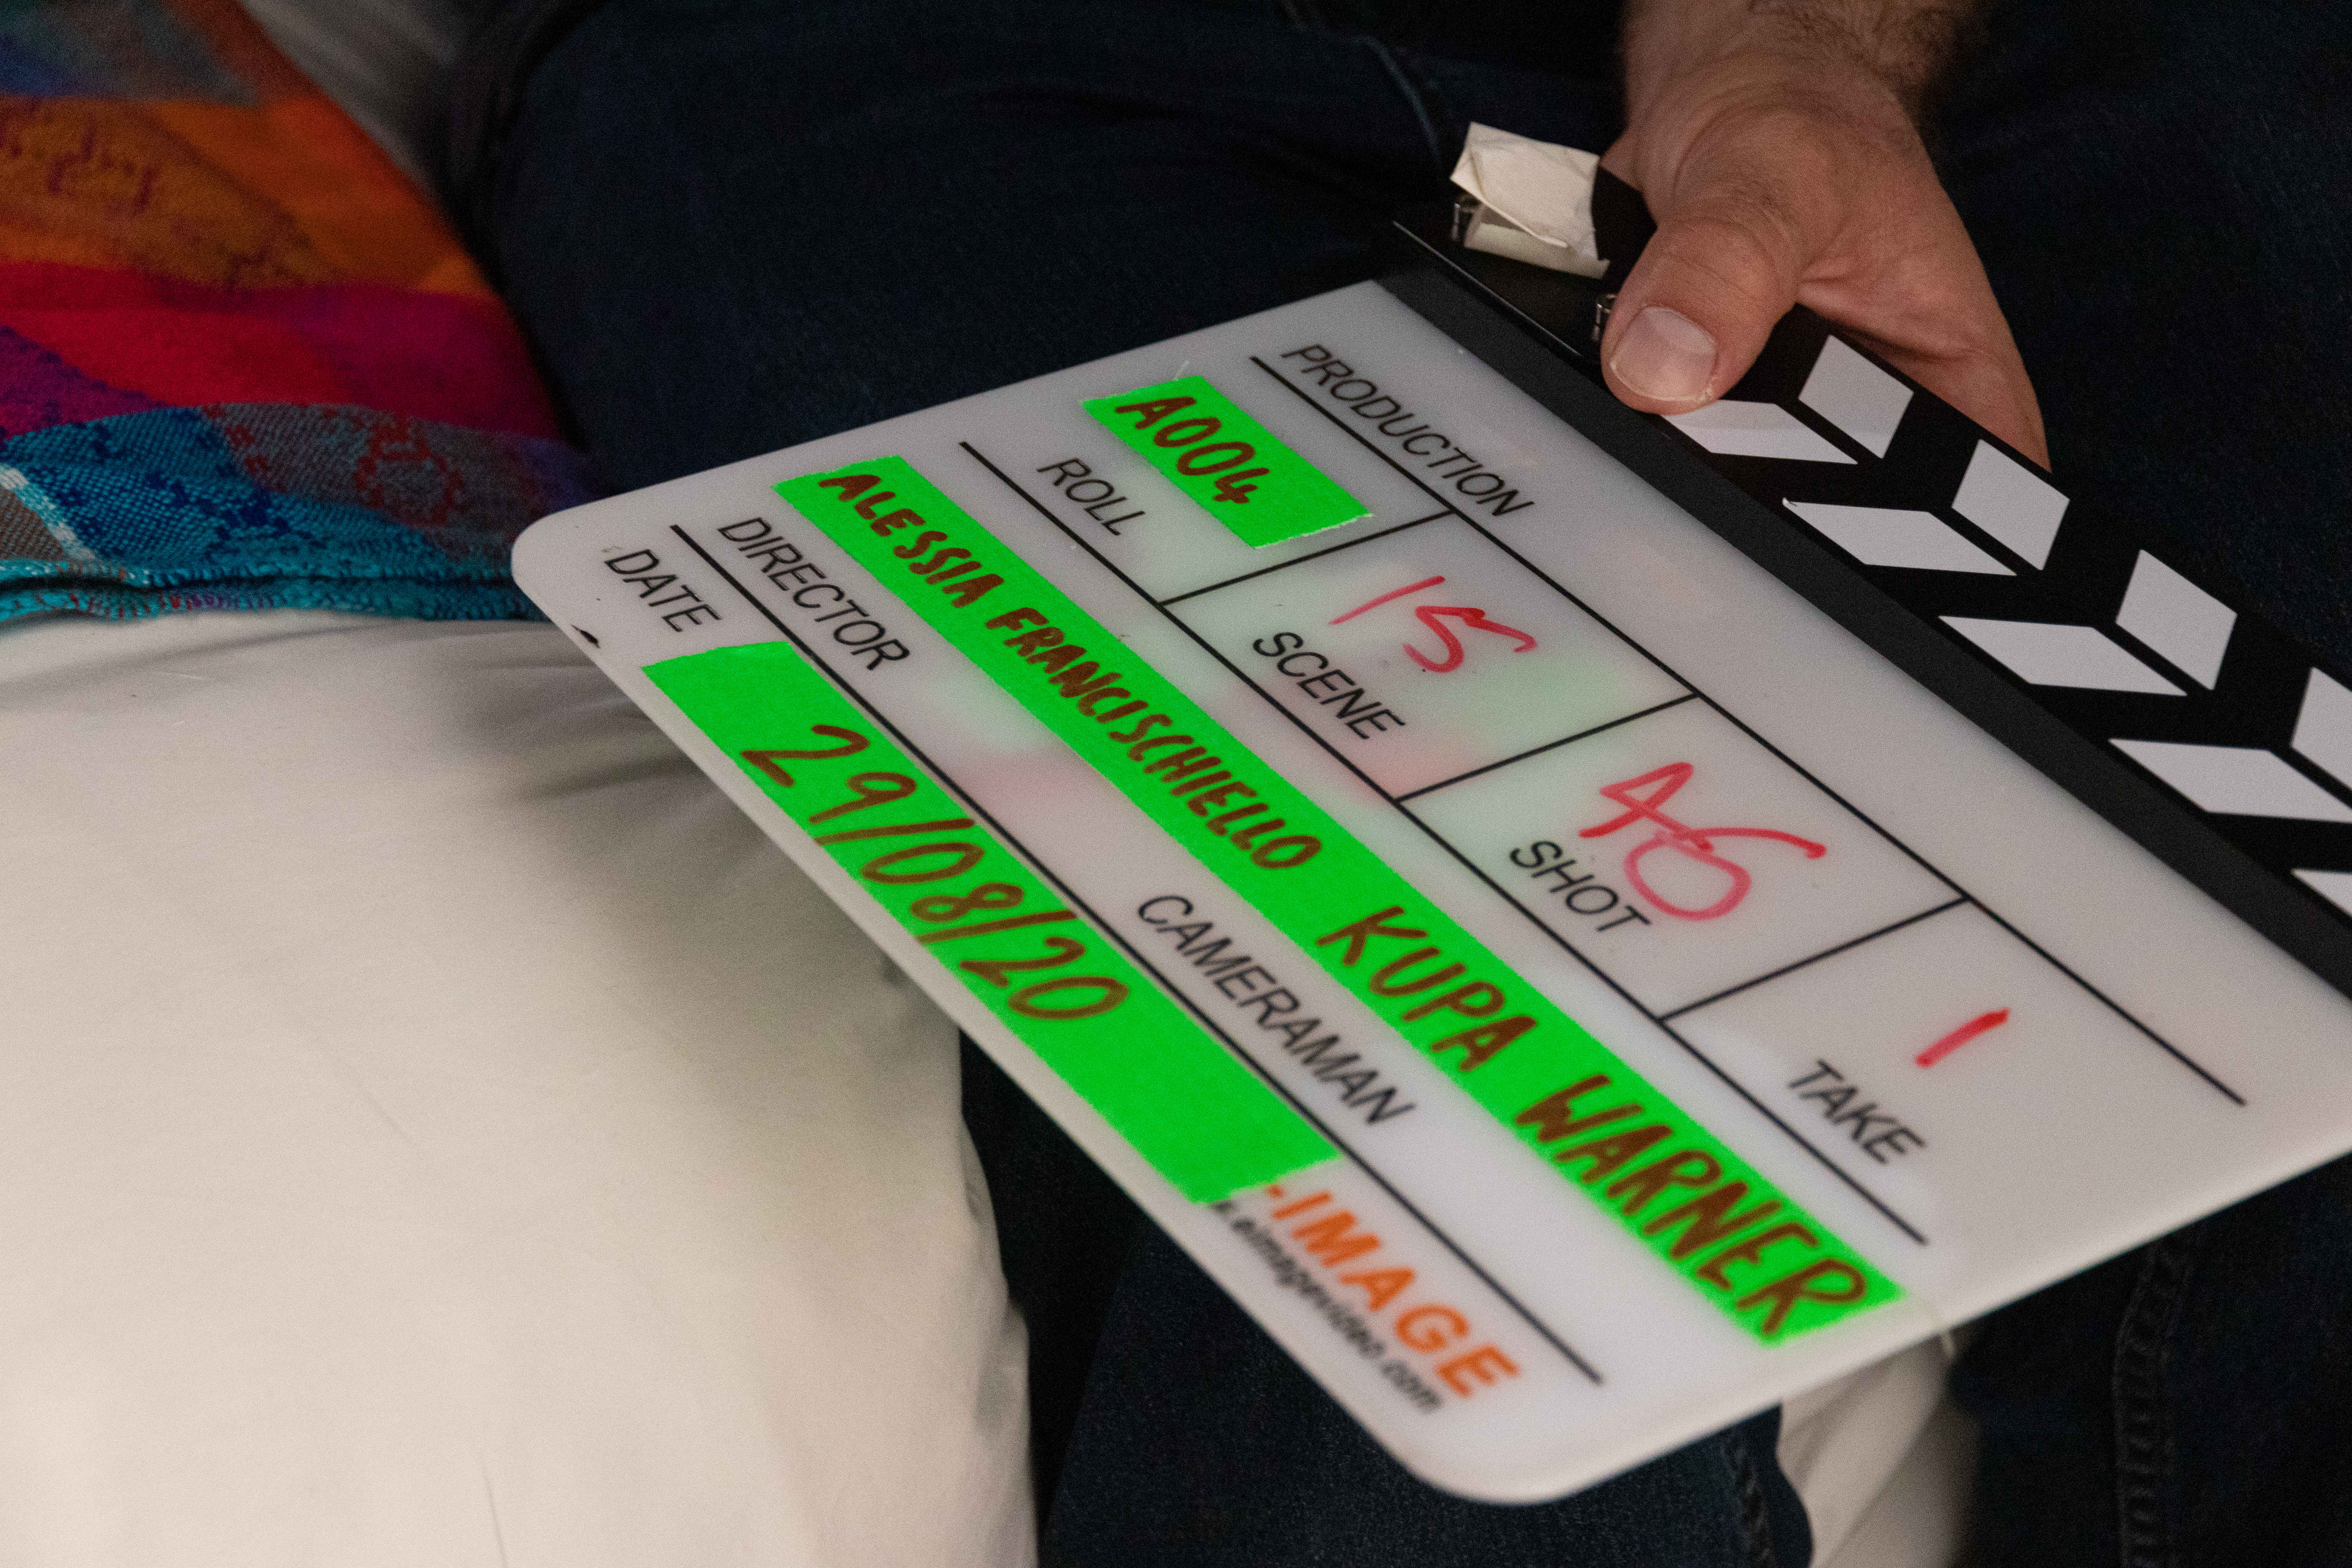 Alessia Francischiello name on clapper board film the terrorist